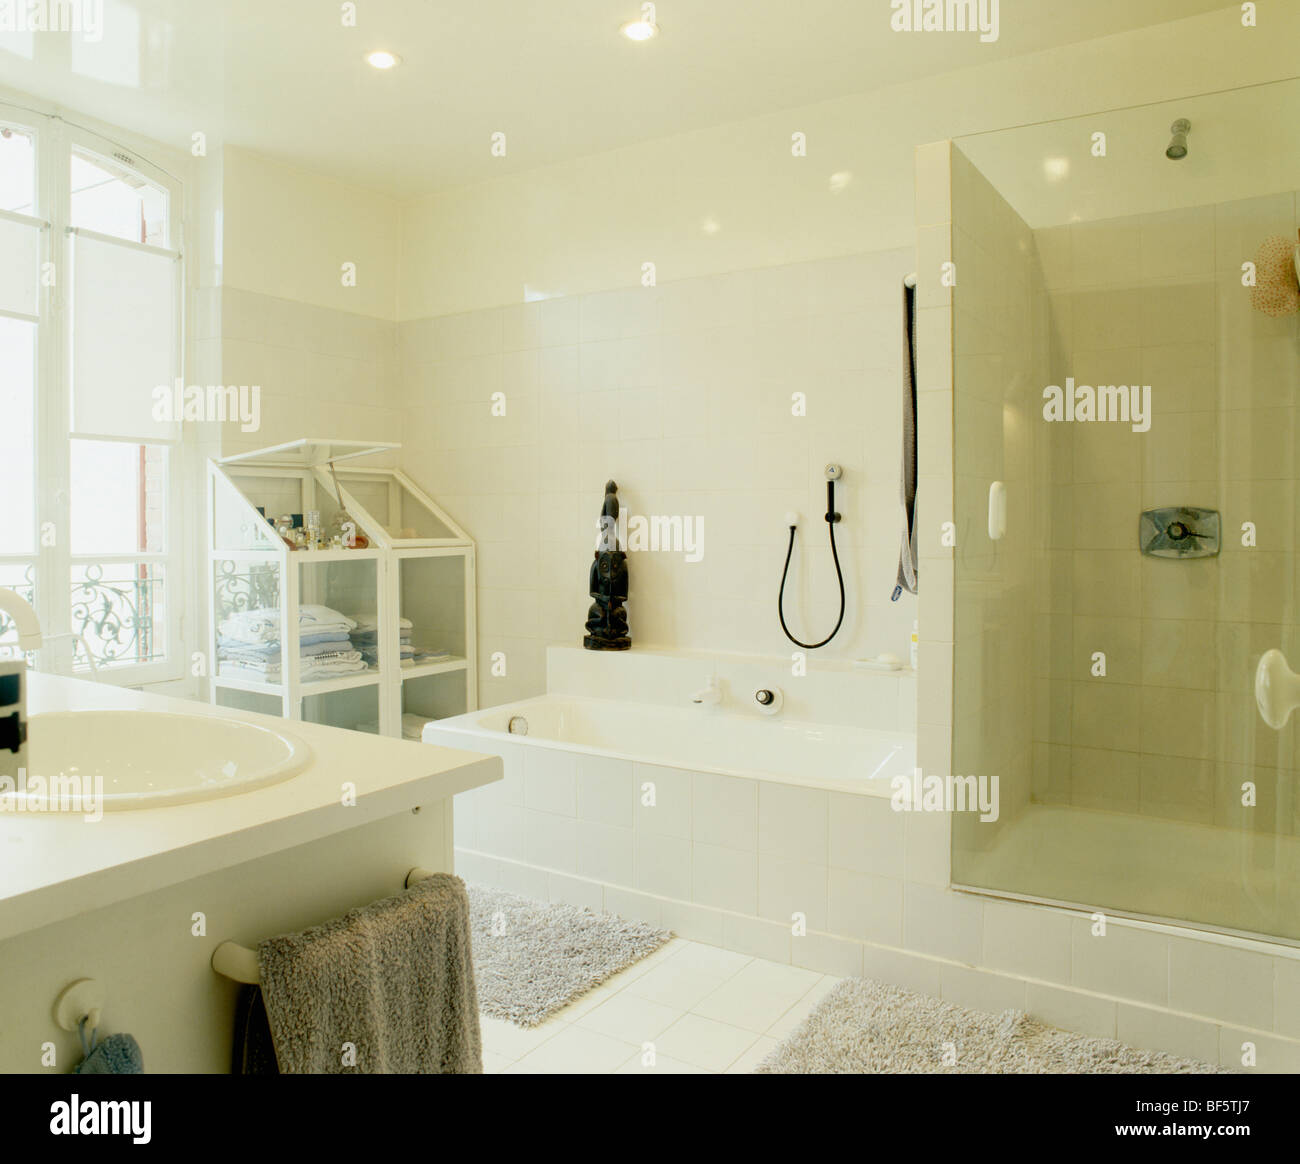 Cream townhouse bathroom with tiled wall separating bath from shower ...